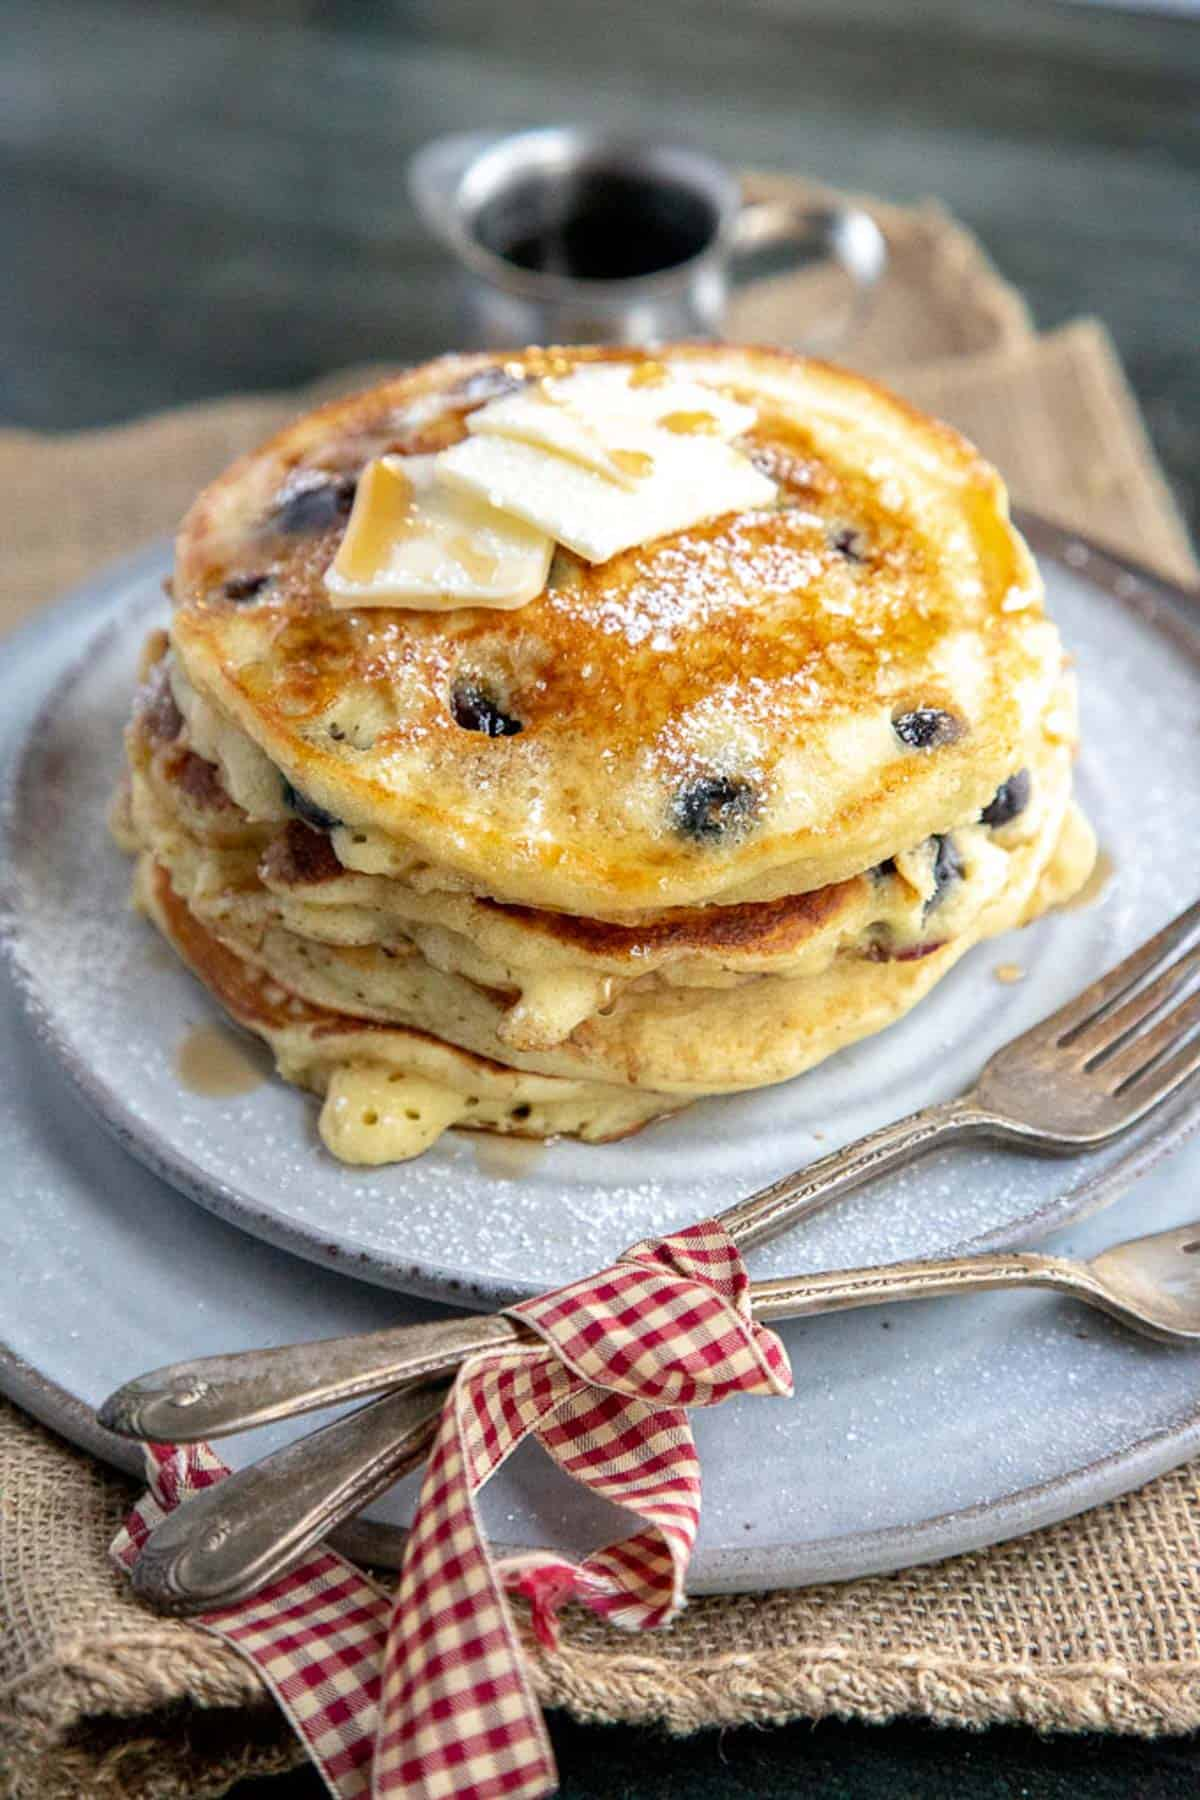 blueberry pancakes on a grey plate